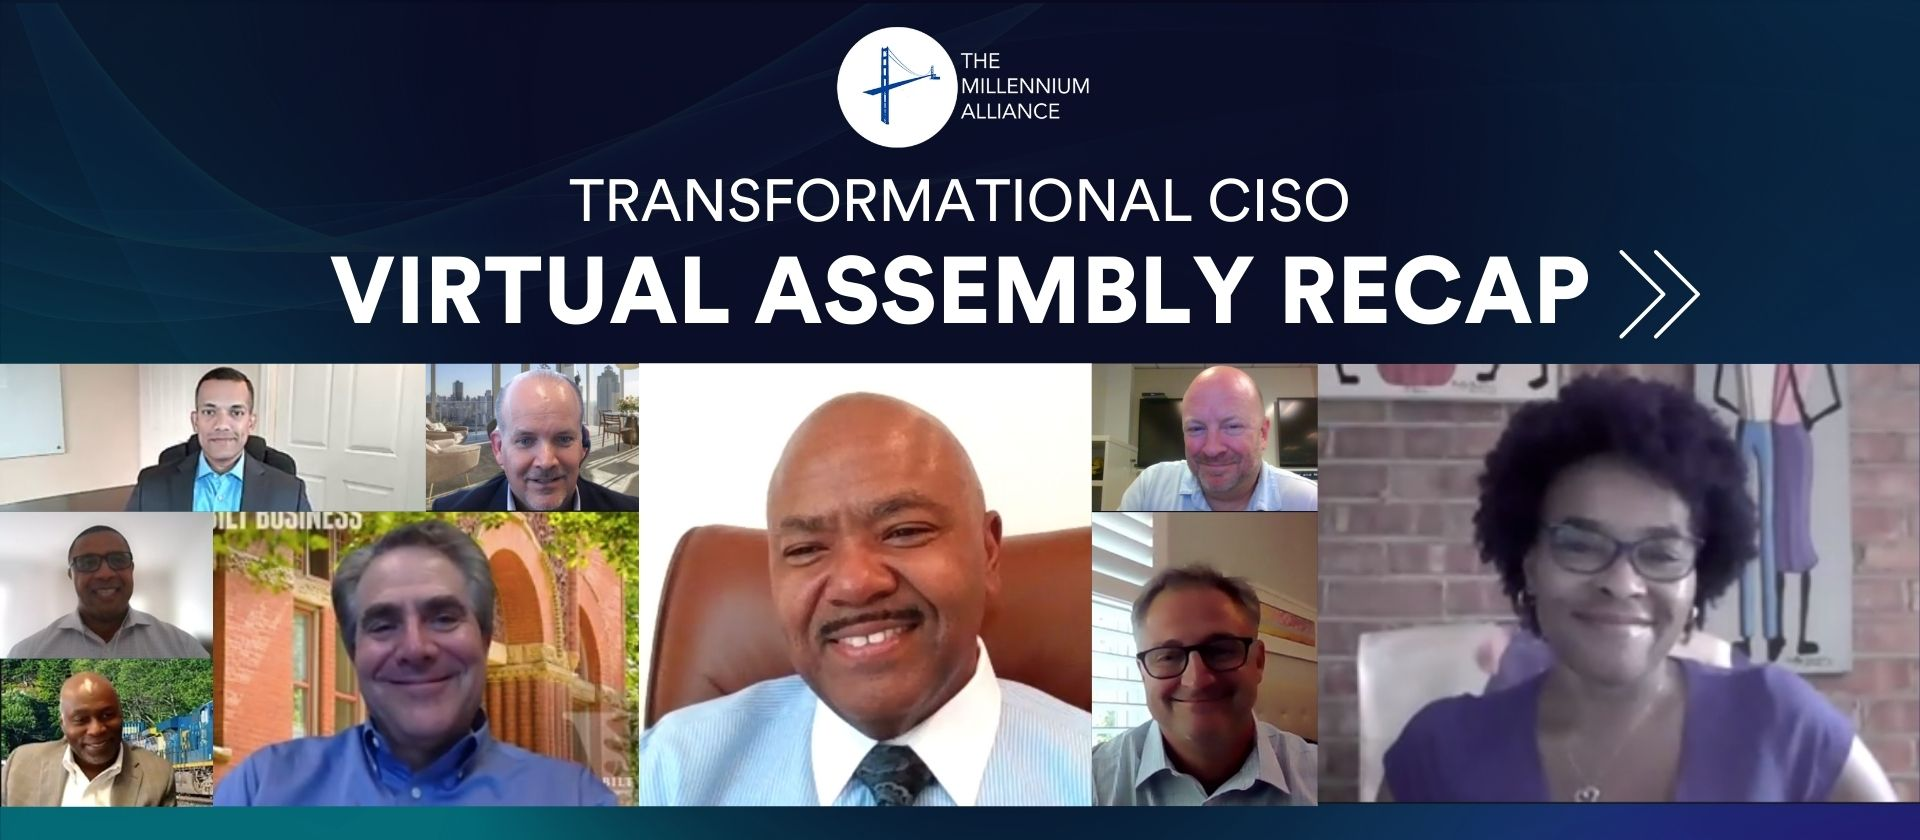 Here's What You Missed at the Transformational CISO Assembly